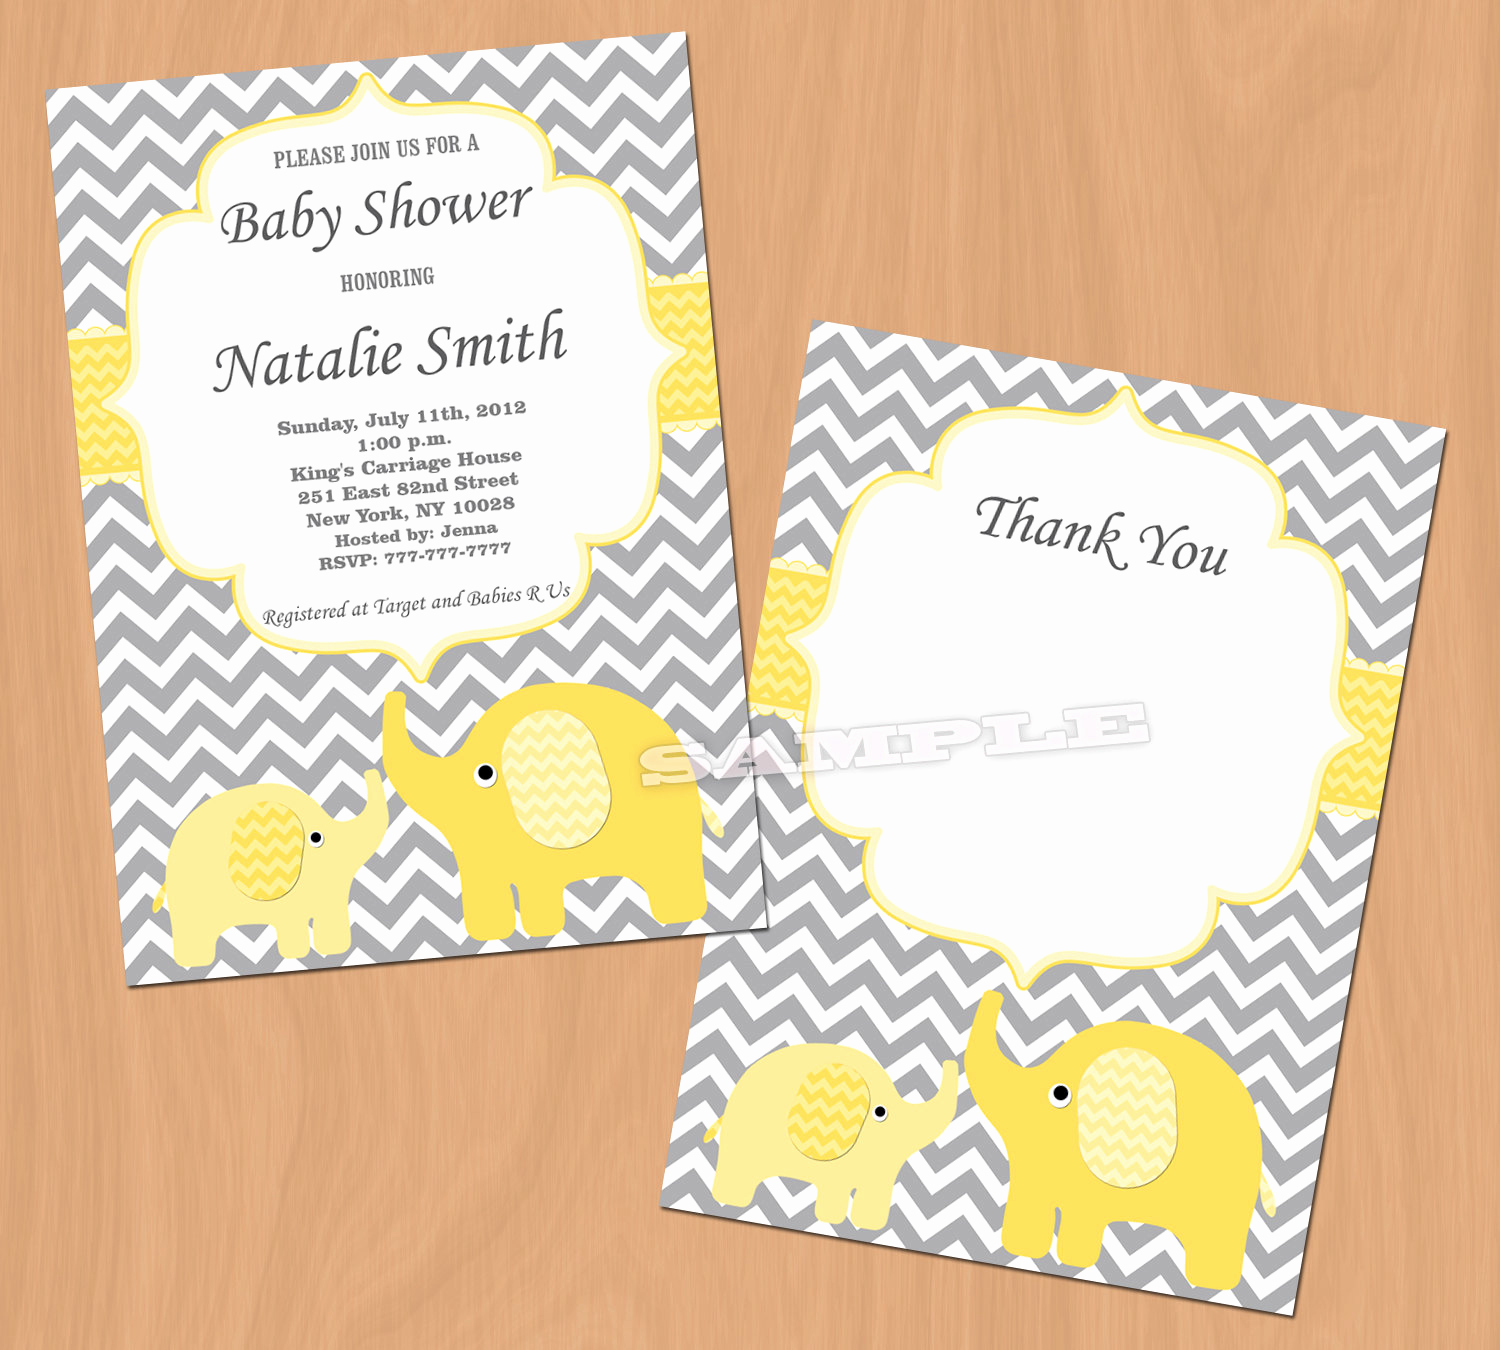 Elephant Invitation Baby Shower Awesome Baby Shower Invitation Yellow Elephant Baby Shower Invitation